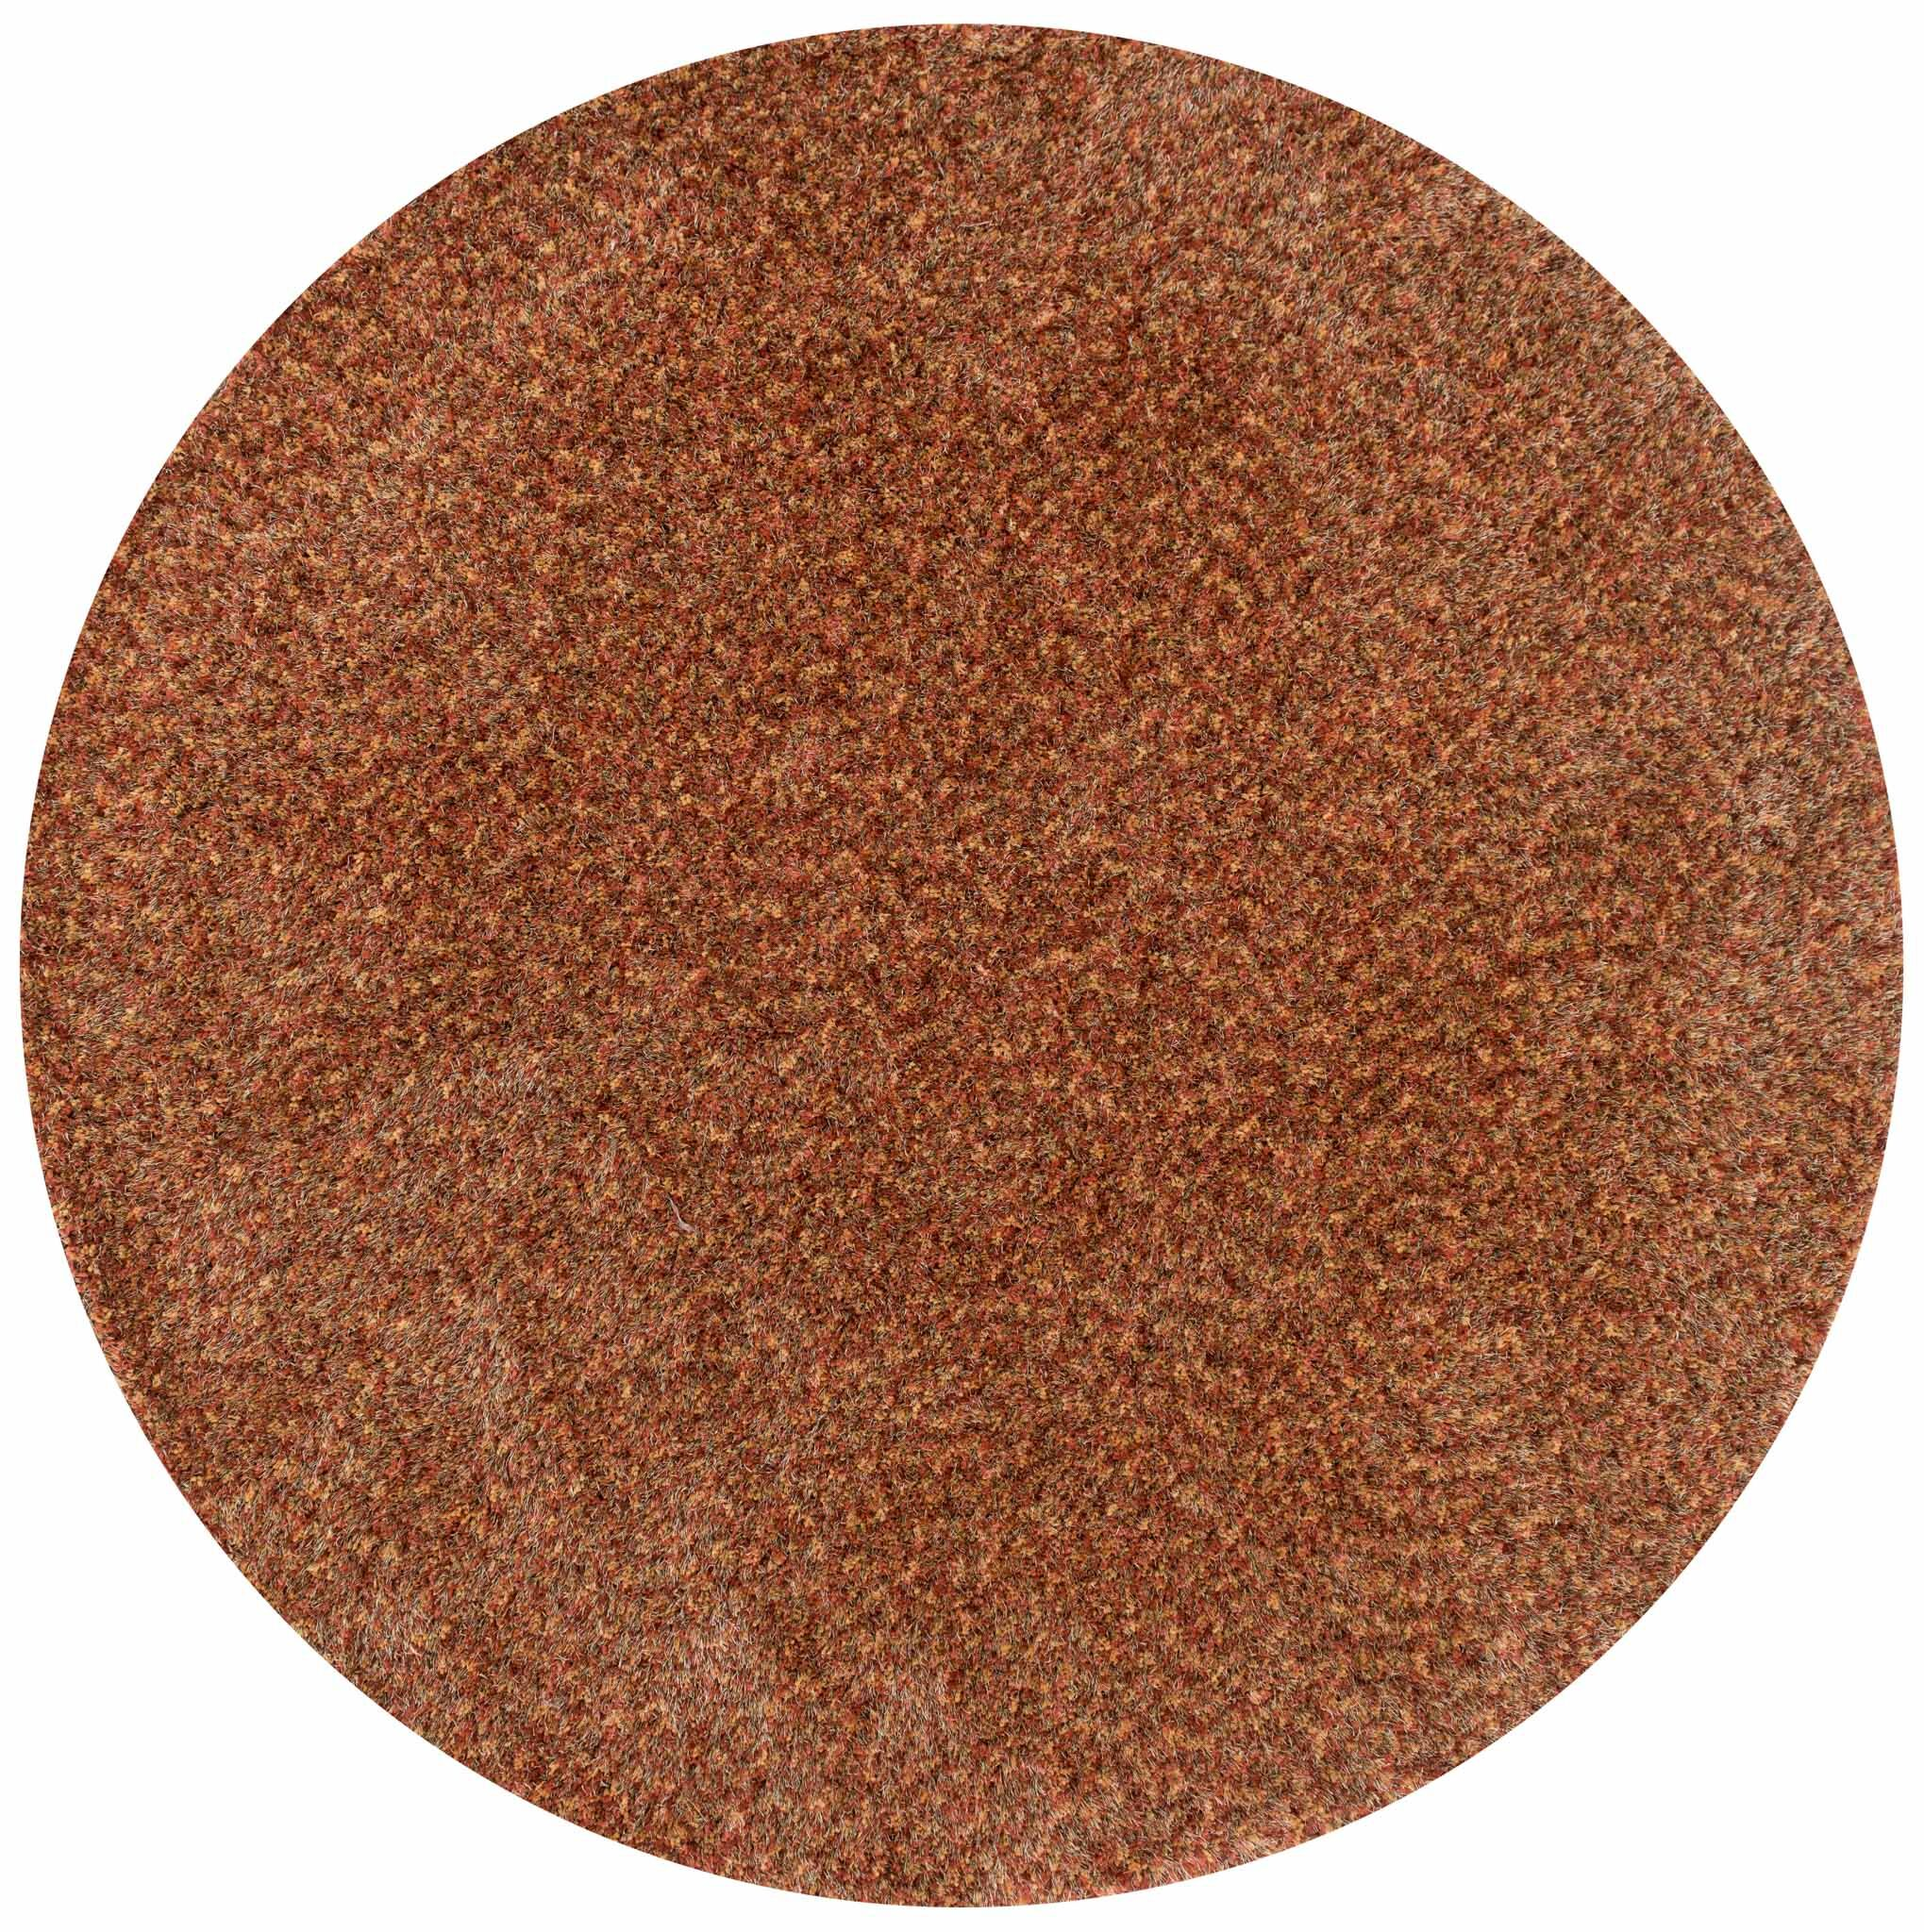 Hackel Hand-Tufted Brown Area Rug Rug Size: Round 7'10